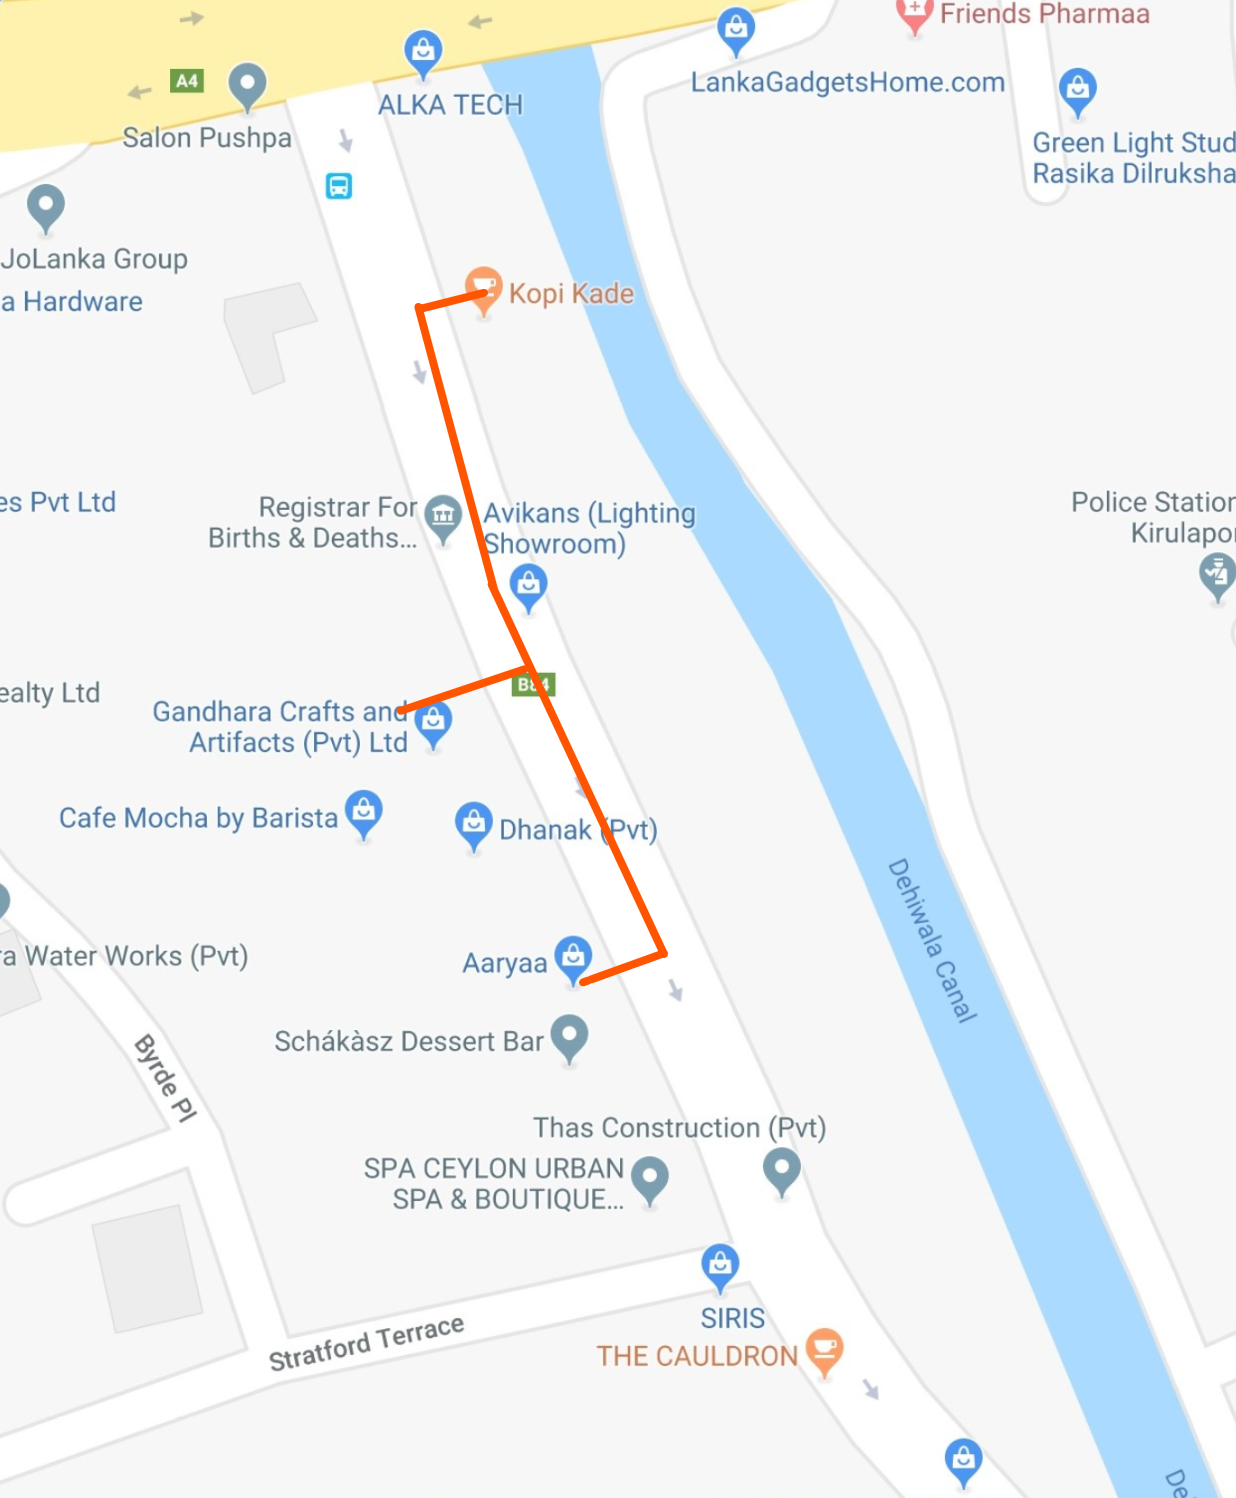 Hand drawn itinerary of Colombo shopping guide for the Colombo 6 Stratford Avenue district on © Google Maps